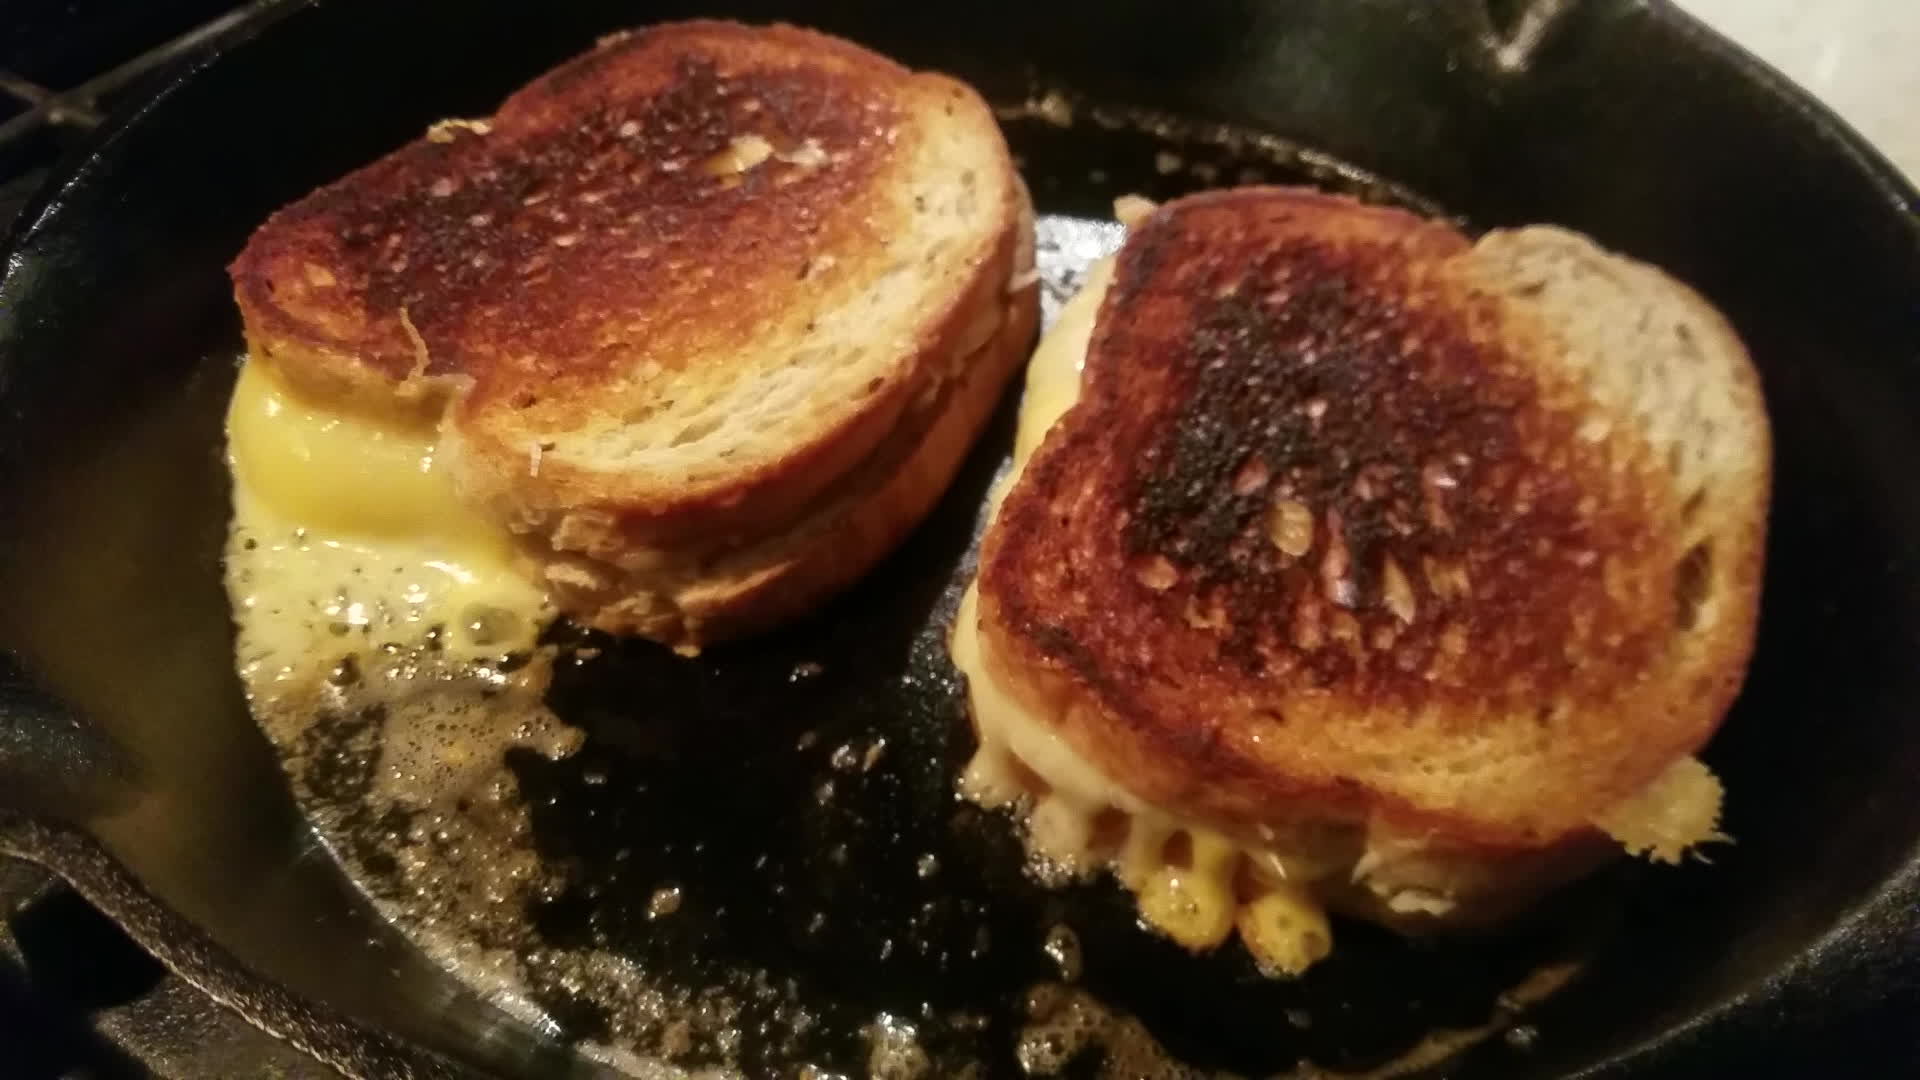 castiron, grilledcheese, Seriosuly sharp cheddar, pecorino romano, and american on rye GIFs